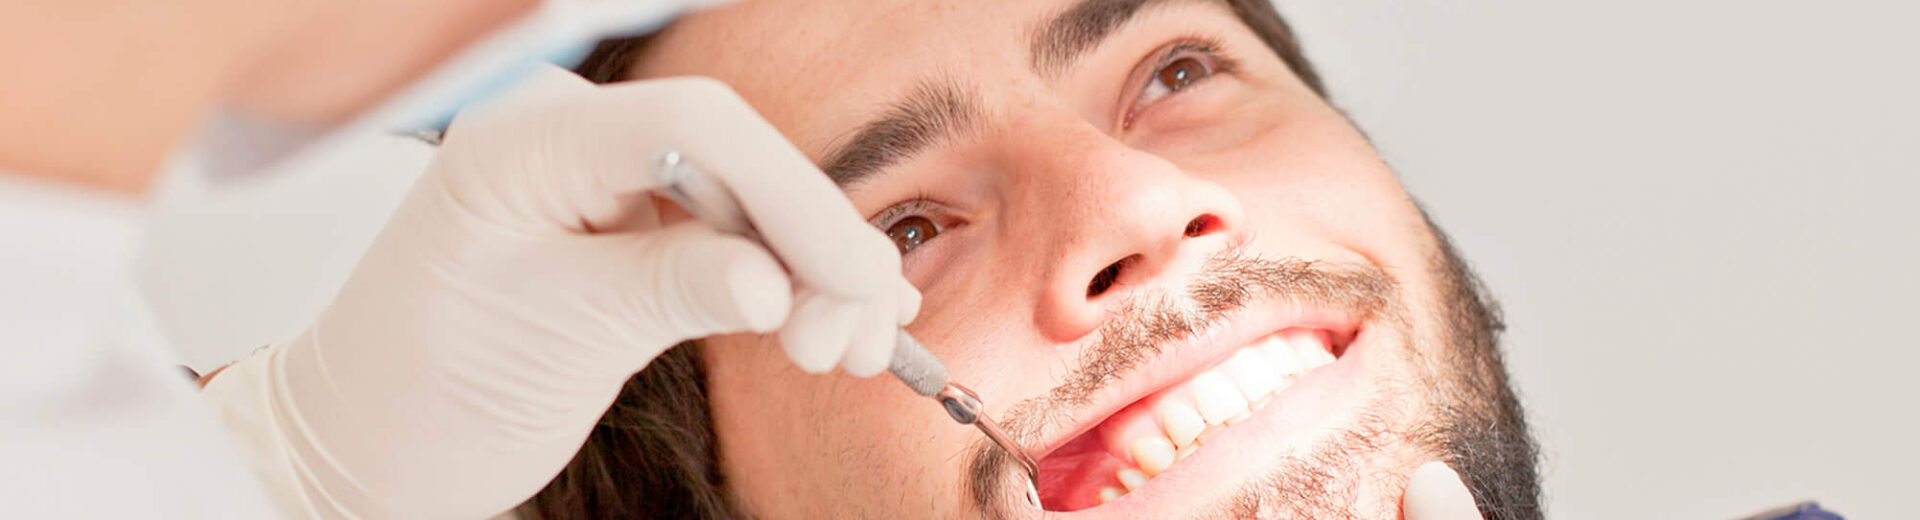 young-happy-man-and-woman-in-a-dental-examination-at-dentist